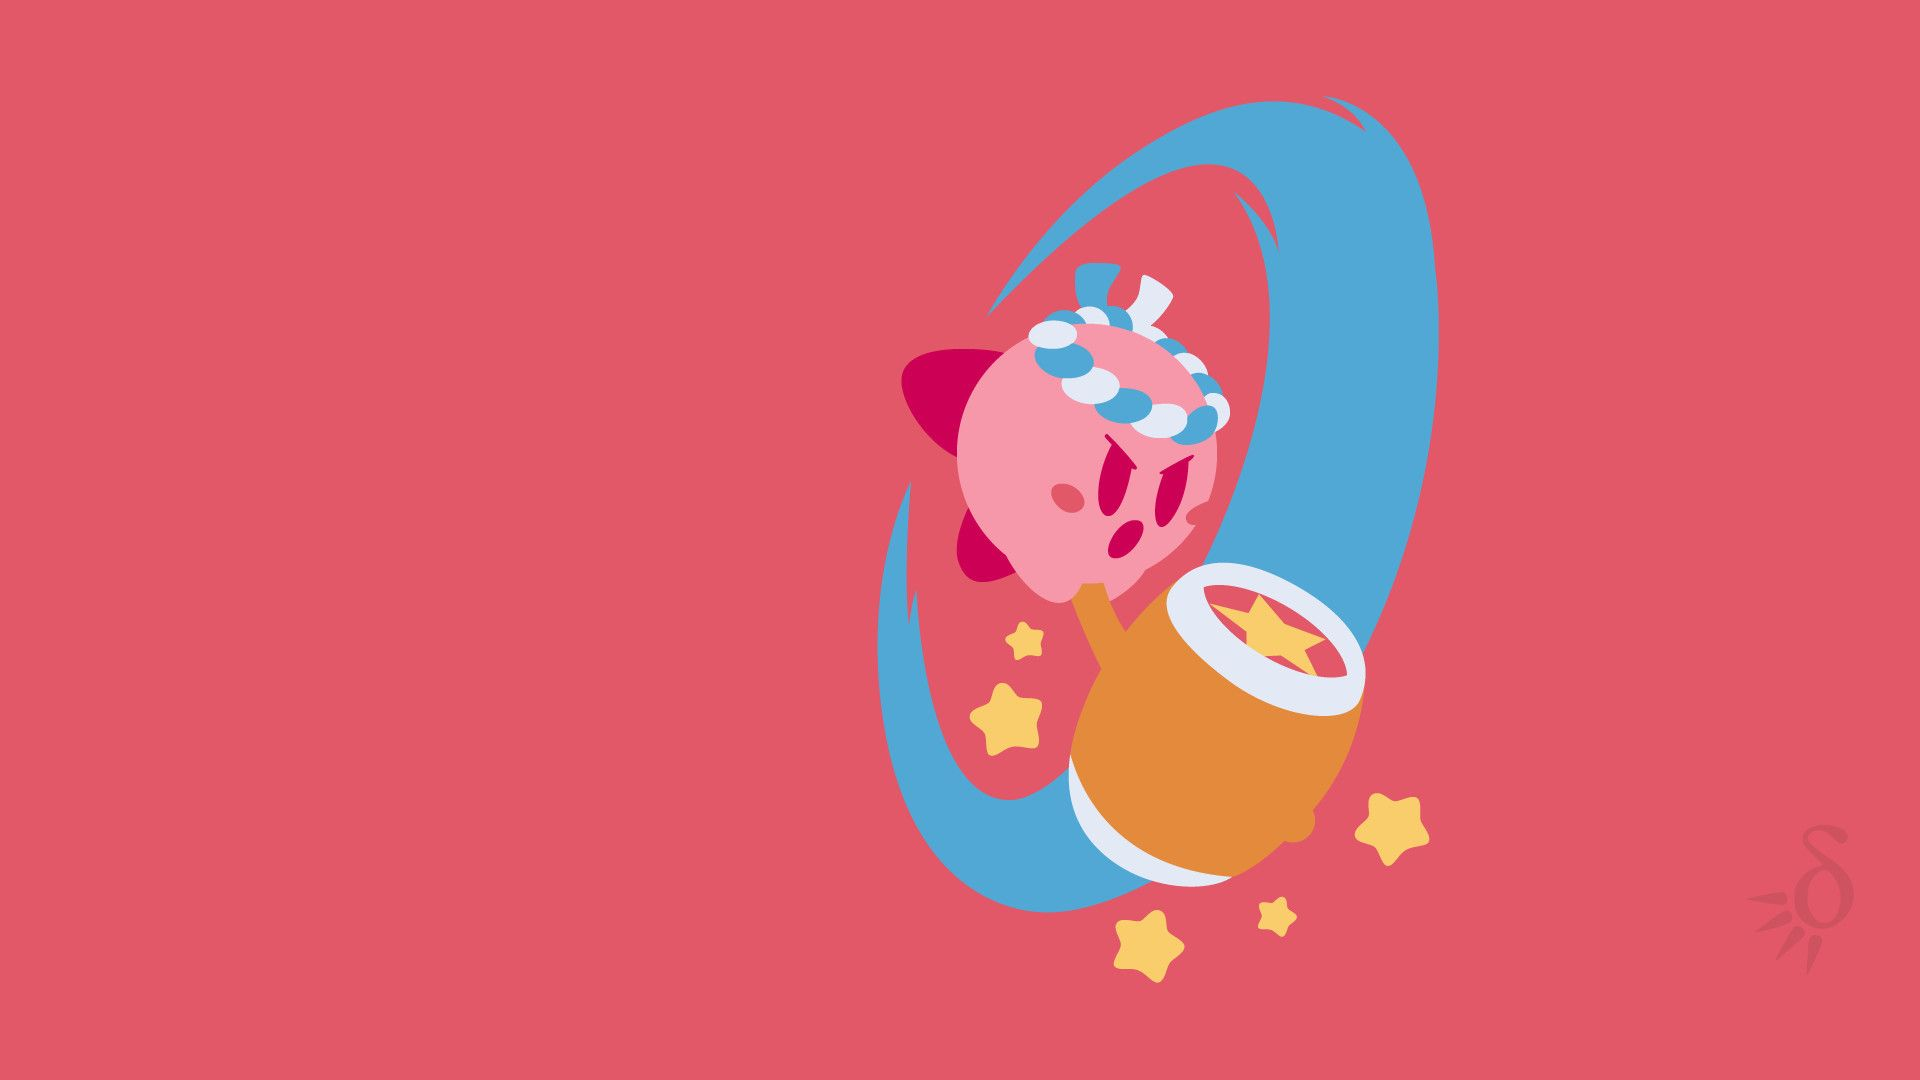 Kirby wallpaper picture hd